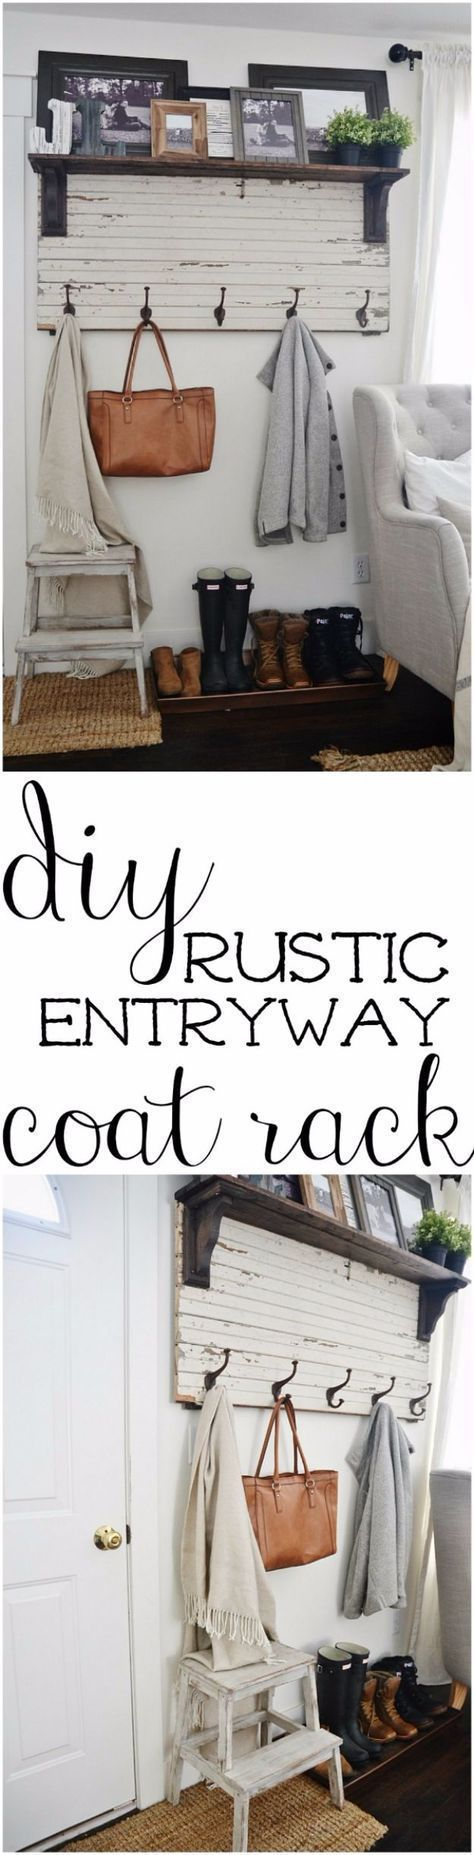 37 Cool Country Decor Ideas That Will Look Great In Your Home